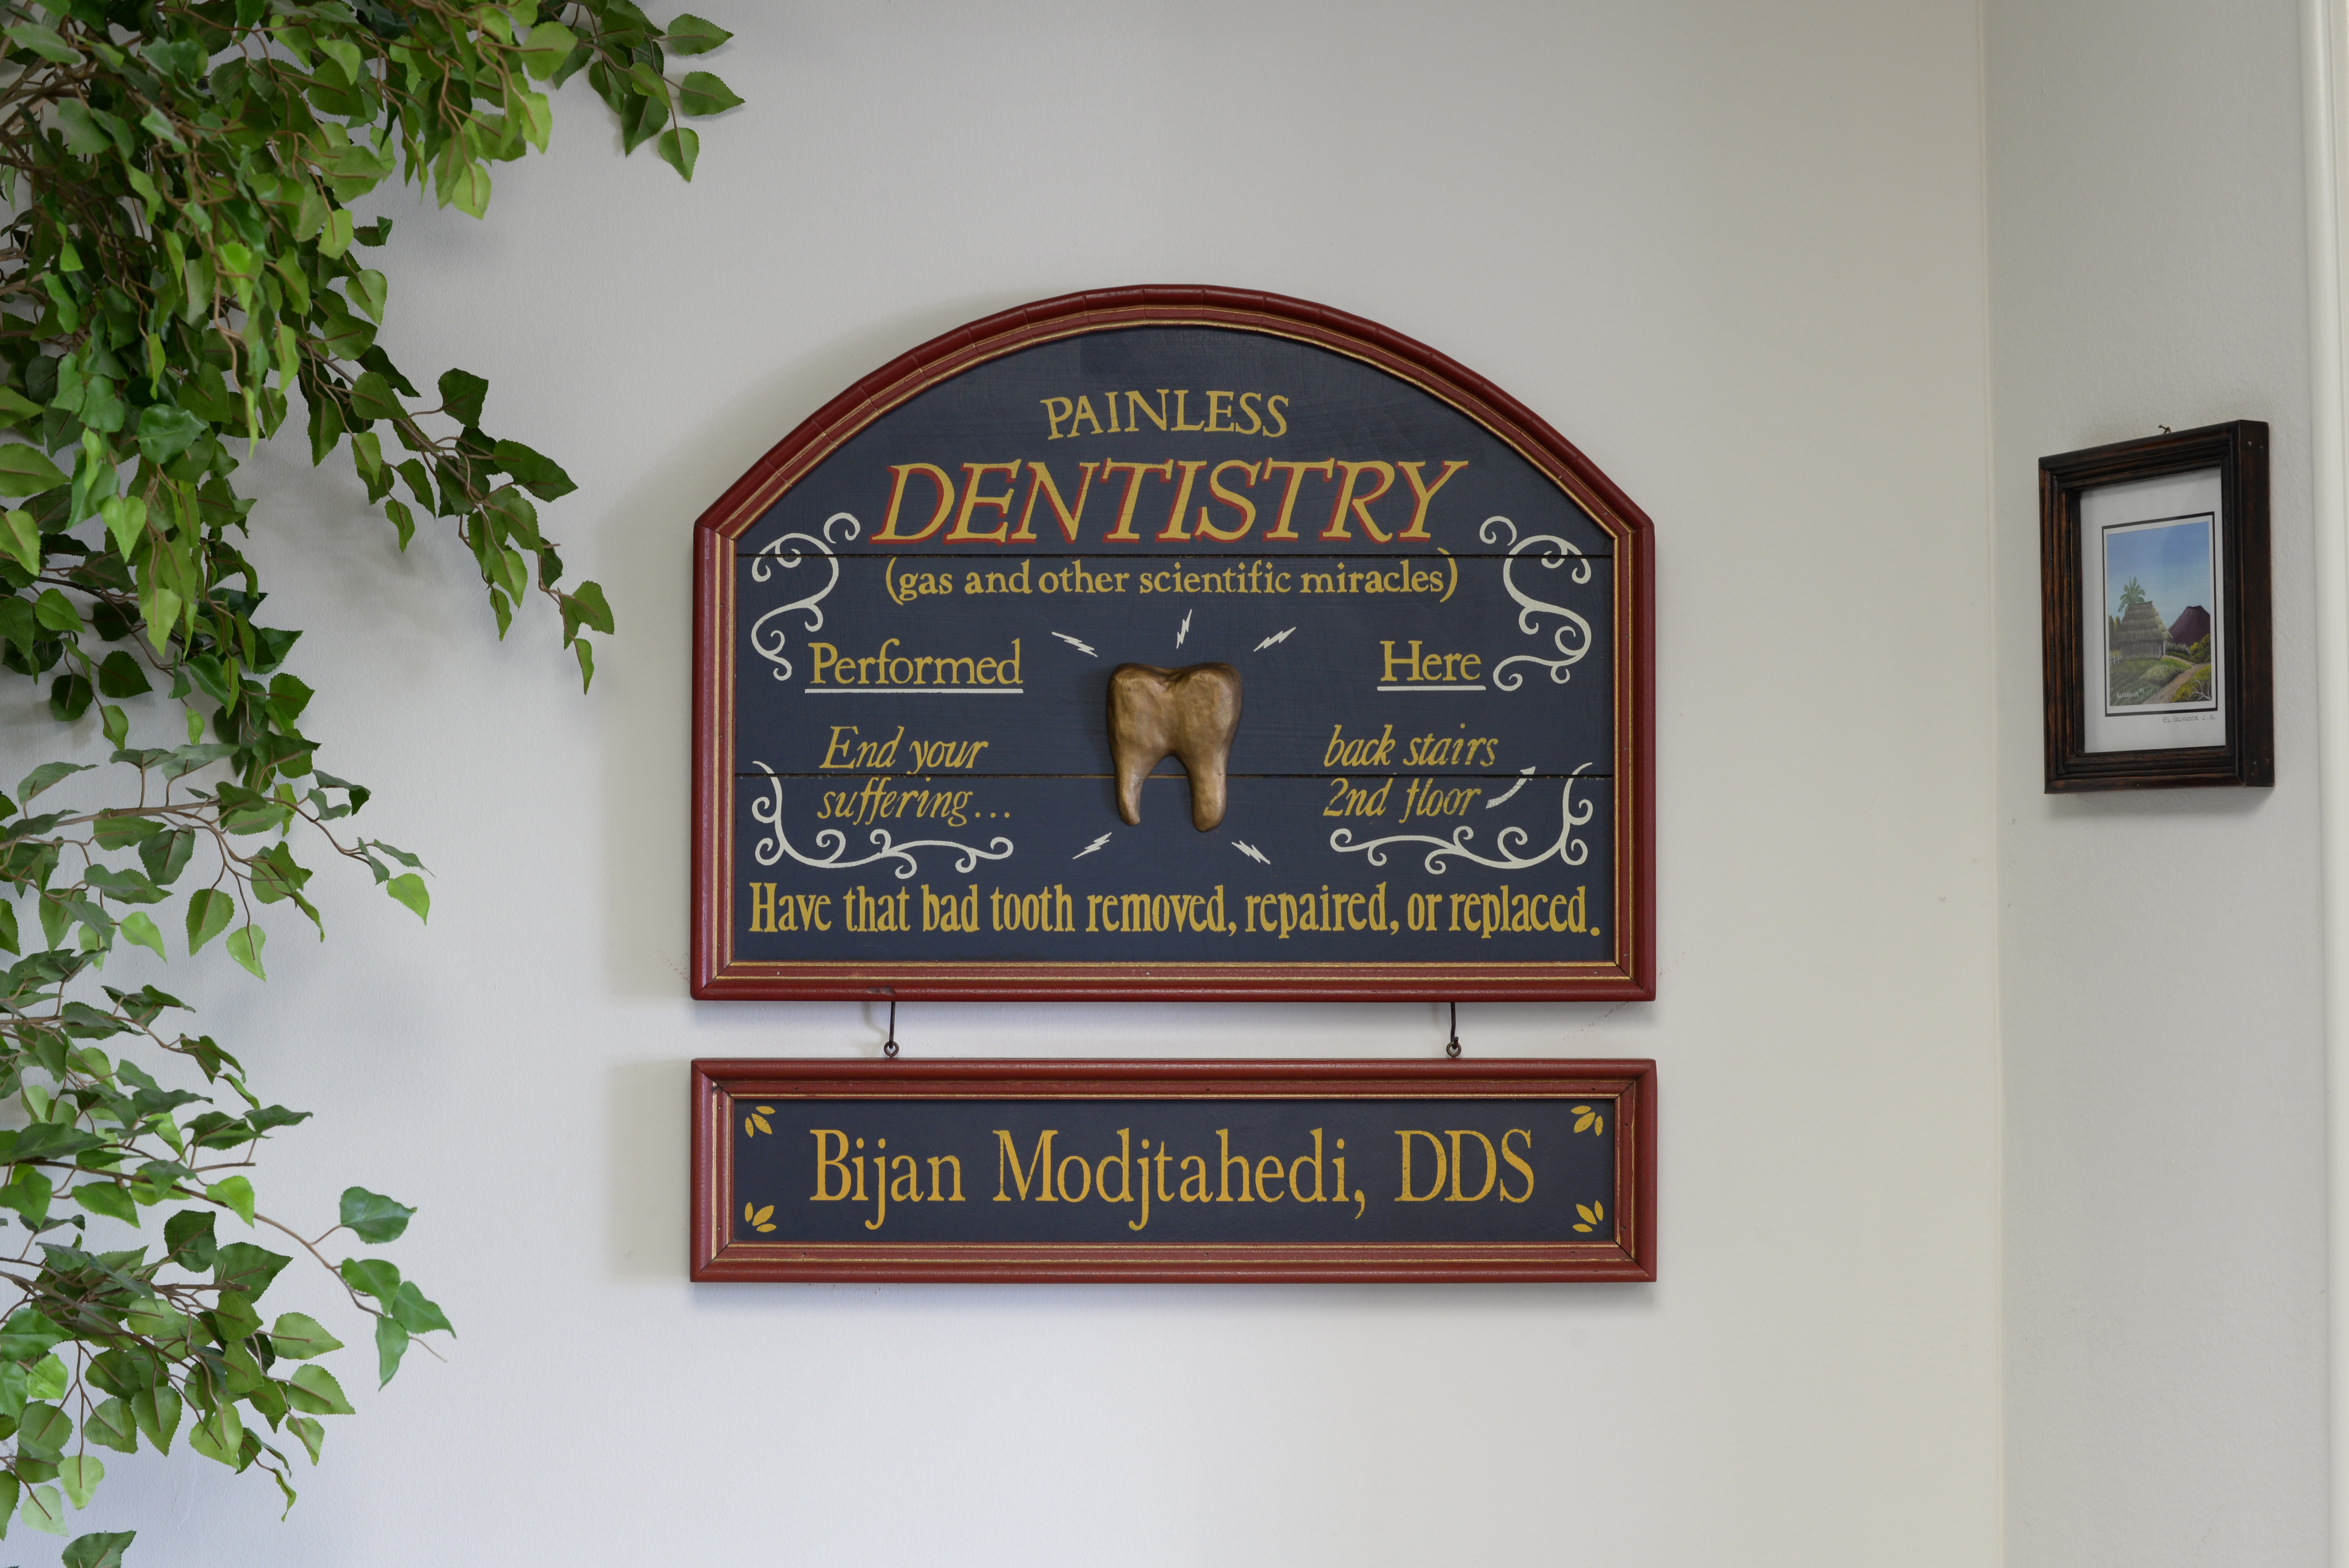 Outside Bijan Family Dental Practice in Fountain Valley, CA